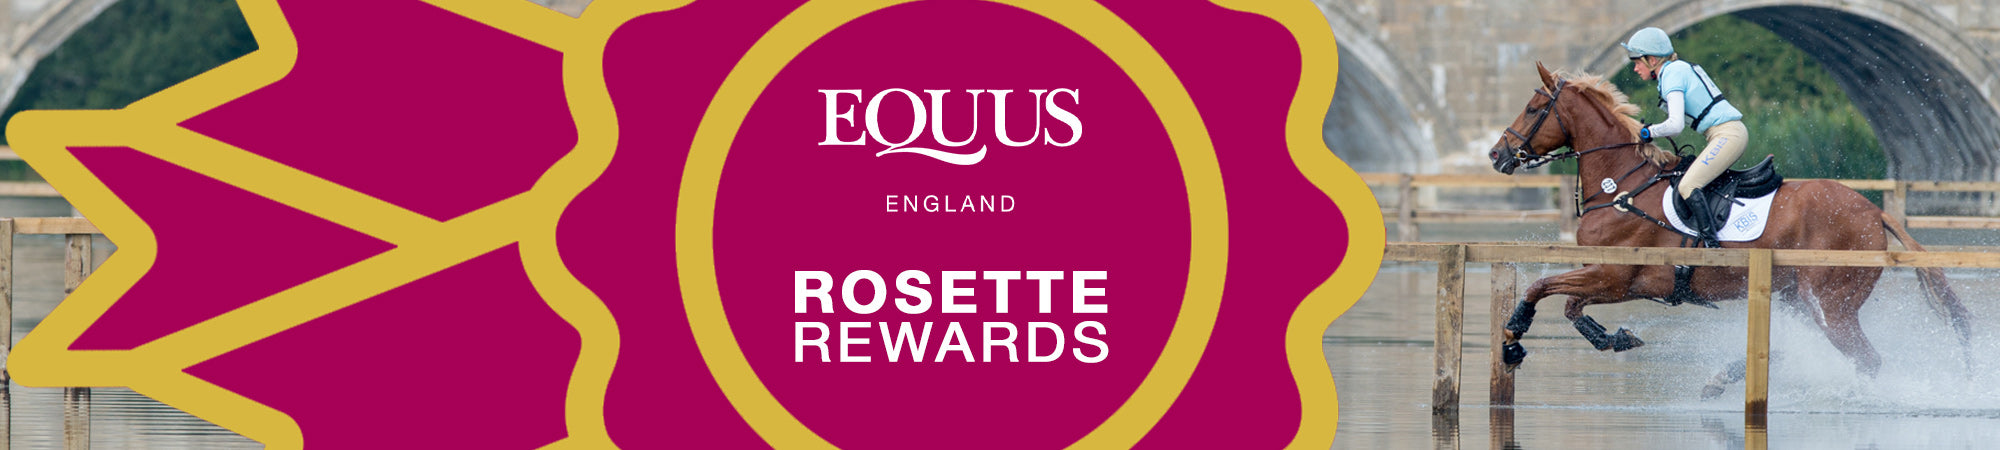 EQUUS VIP Rosette Rewards Programme